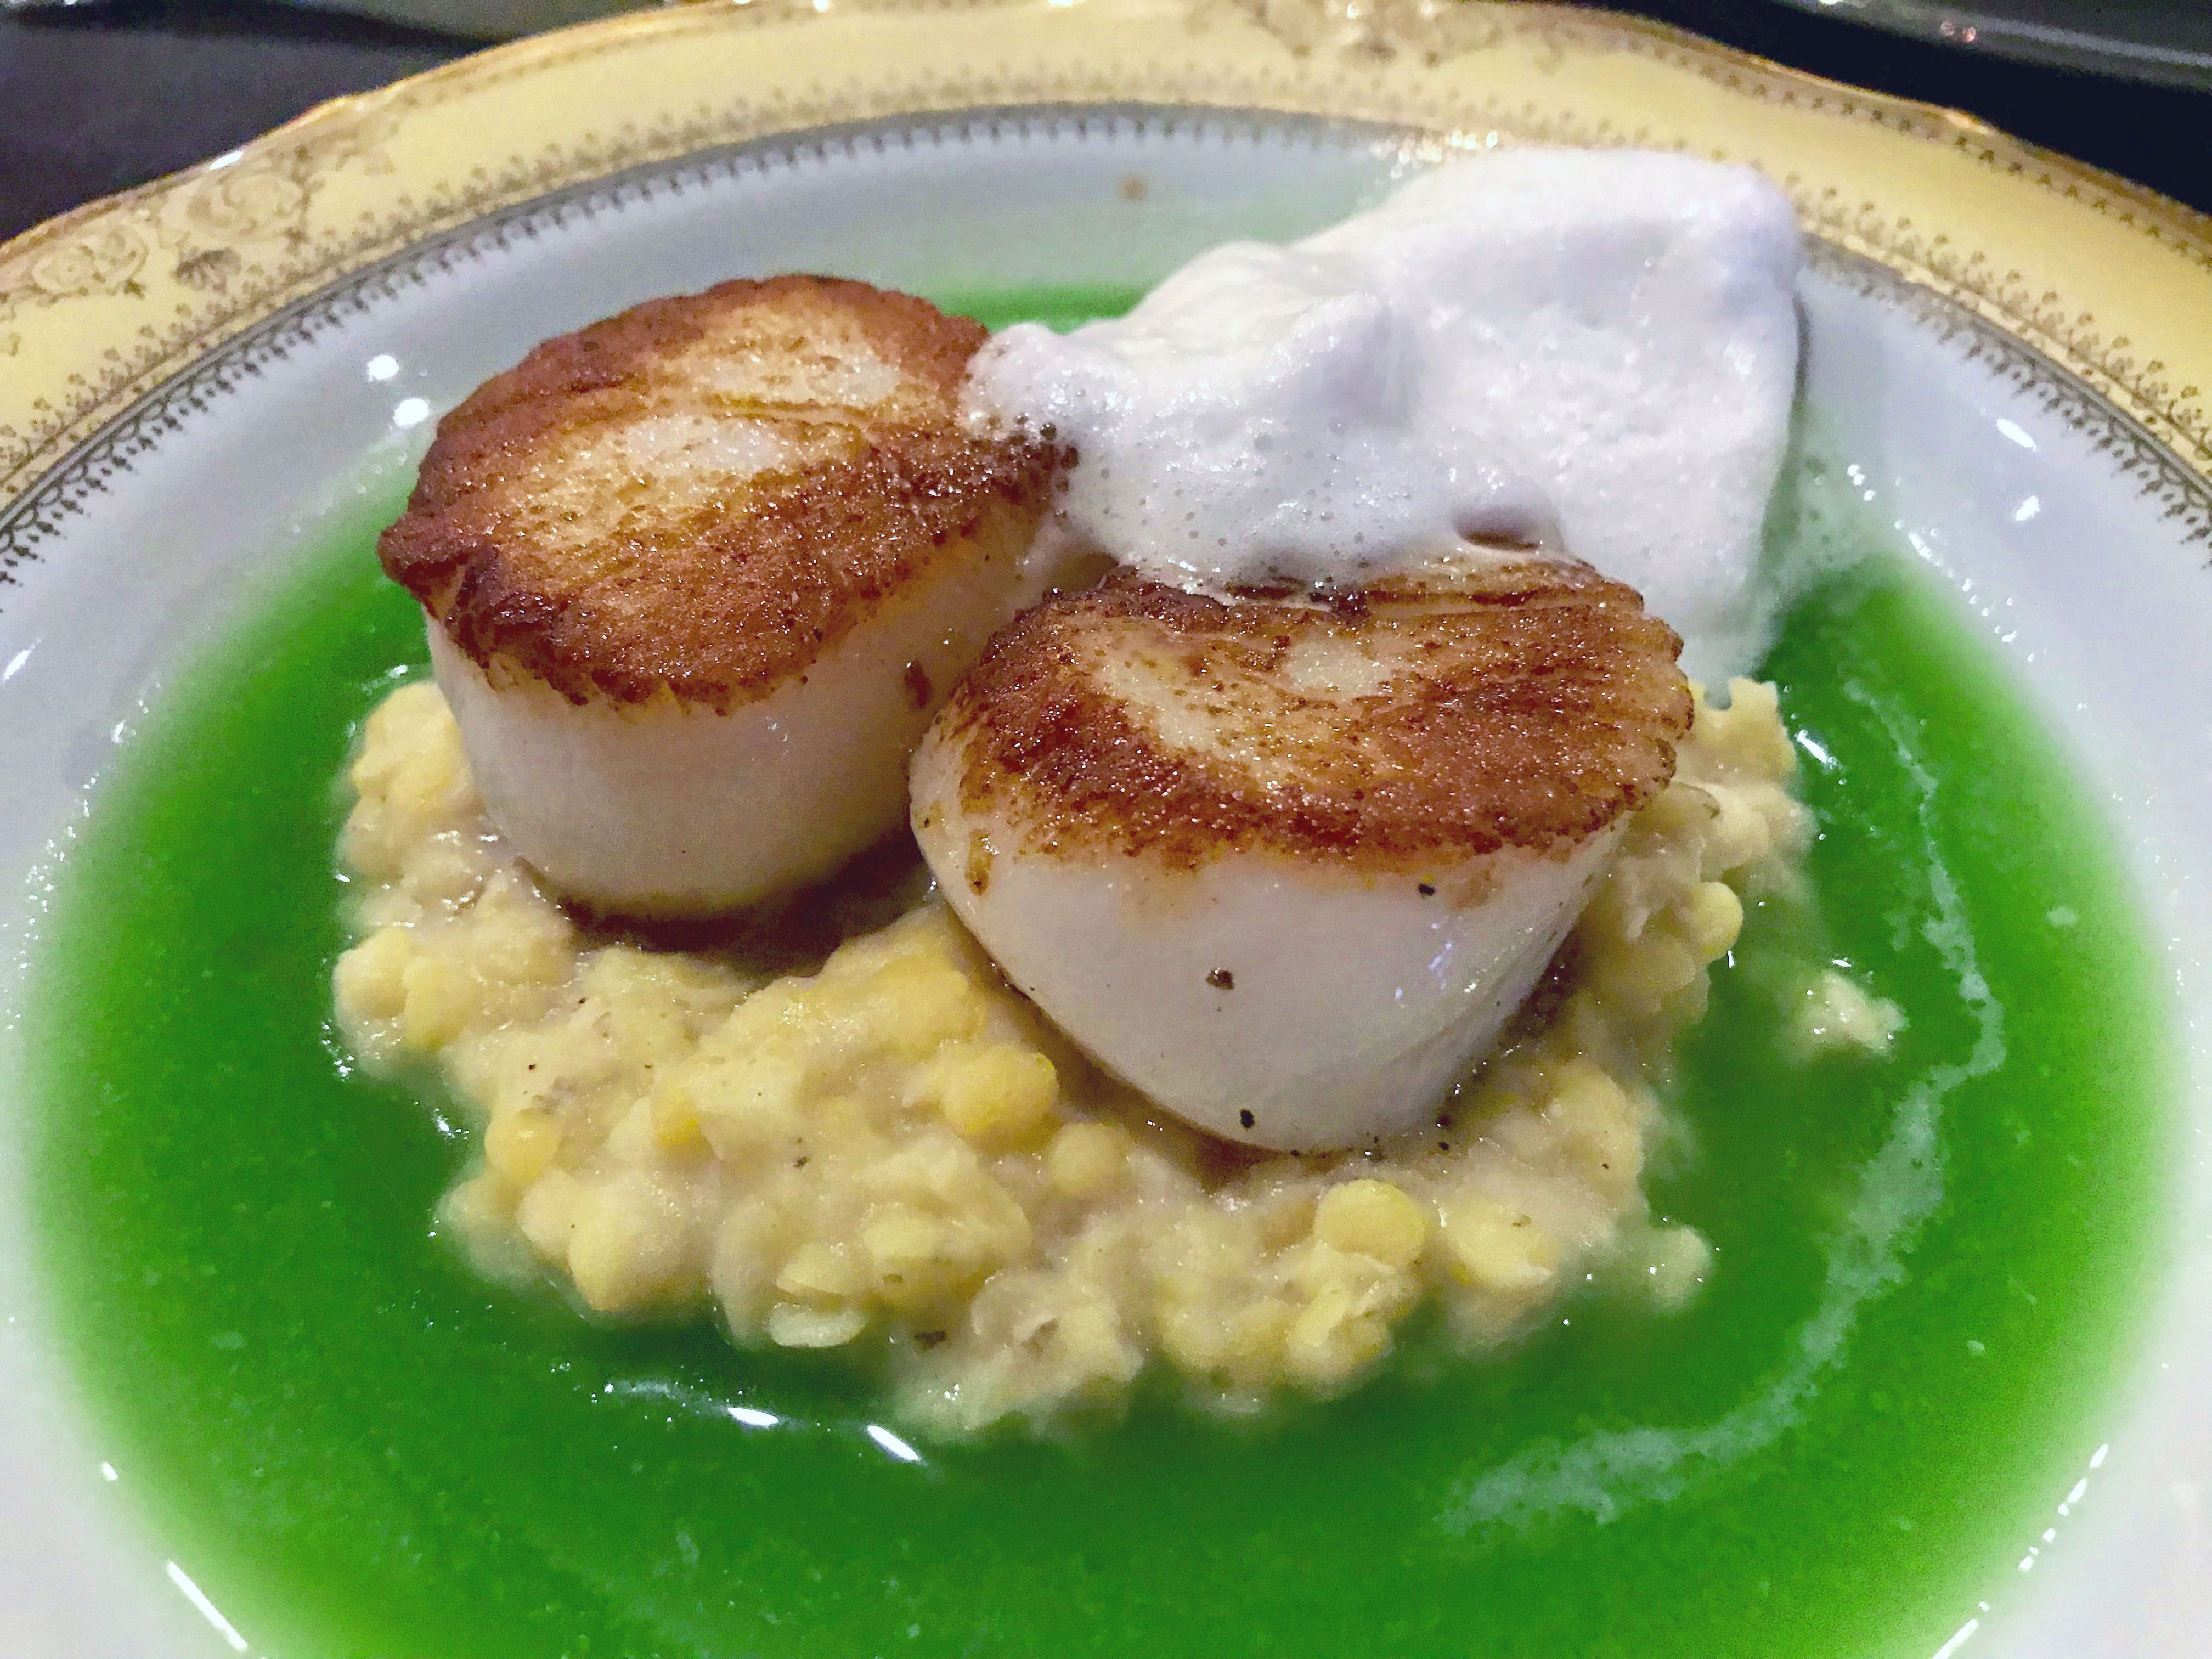 Large, sweet scallops were served over lentils and parsnip puree in mint and snow pea broth, and garnished with spruce-tip foam in early summer at Meraki, 939 S. Second St.